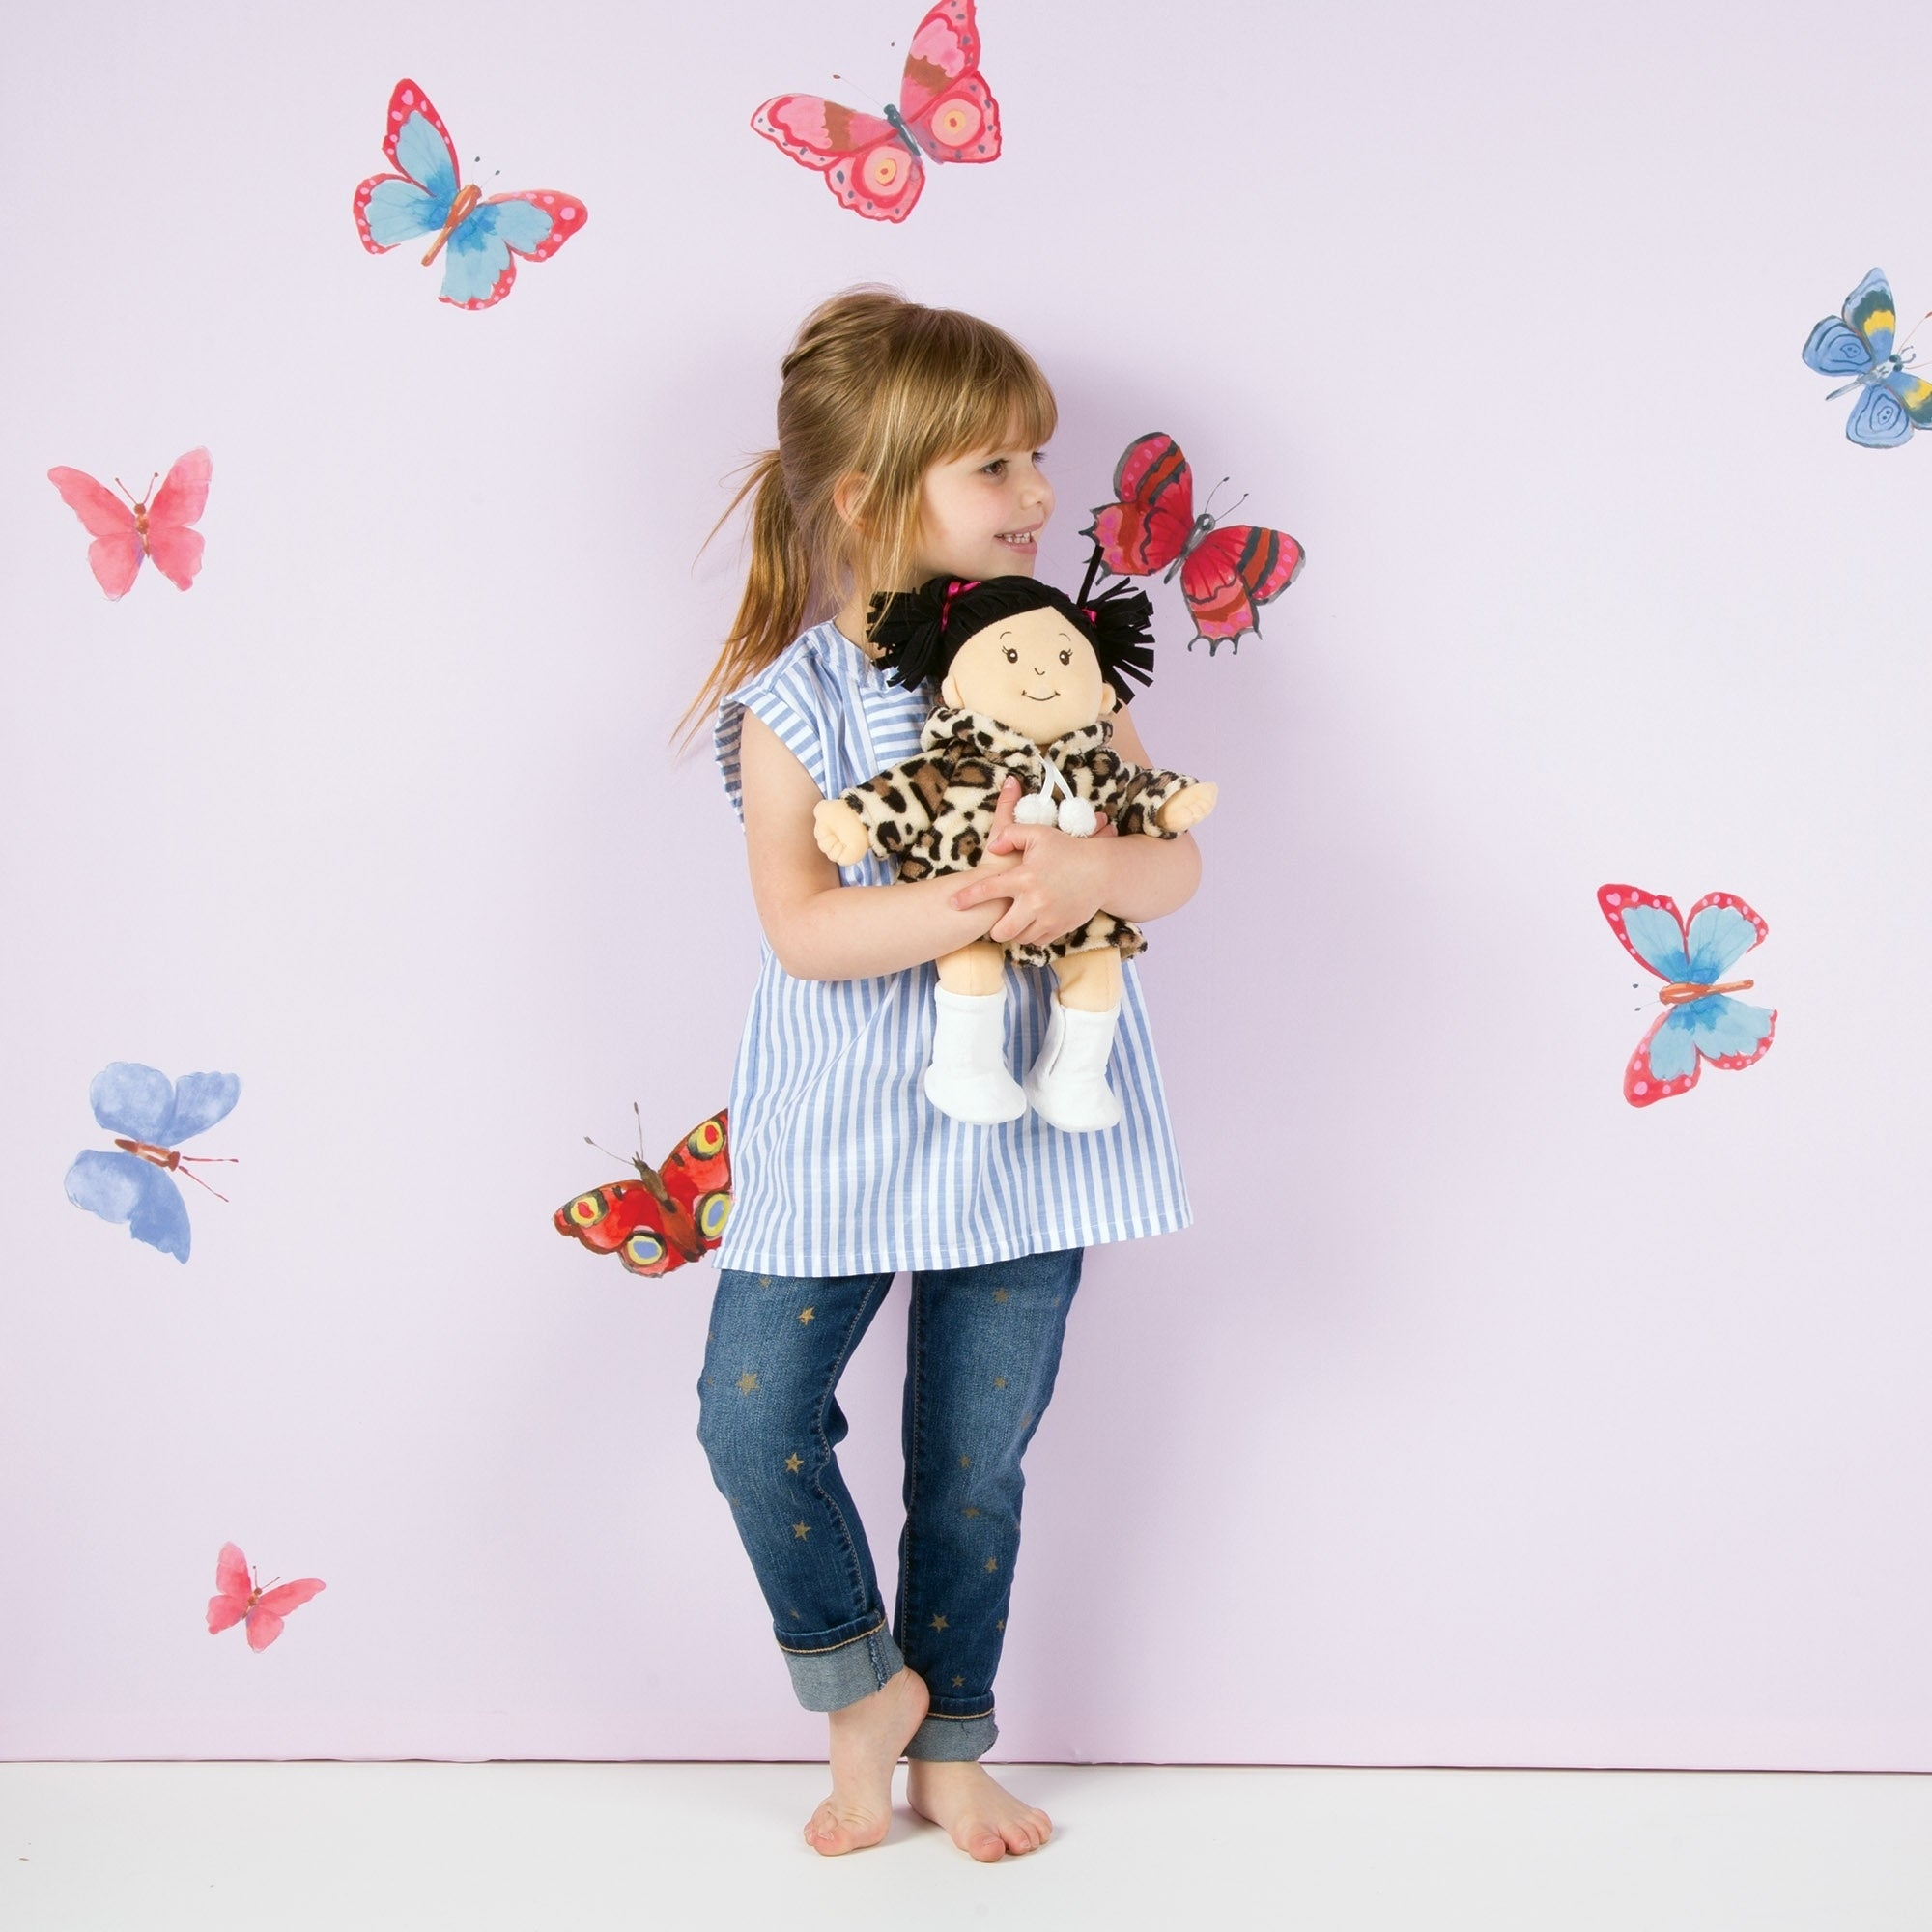 ddd0f1652 Shop Manhattan Toy Baby Stella Bundle Up 15 inch Baby Doll Clothing Set -  Free Shipping On Orders Over  45 - Overstock - 21662280